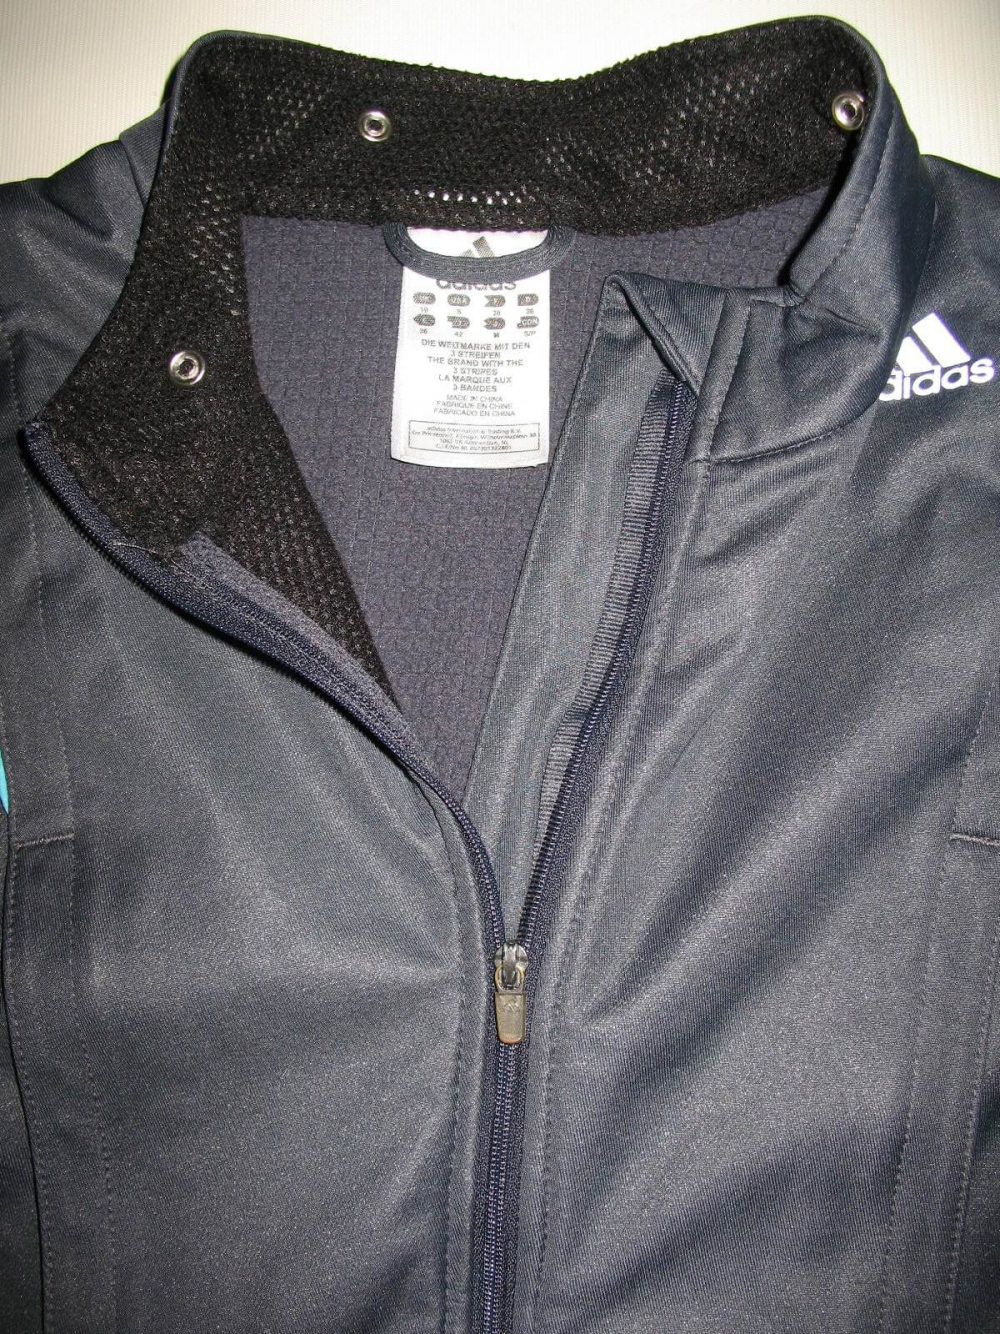 Куртка ADIDAS climaproof windstopper jacket lady (размер М) - 2